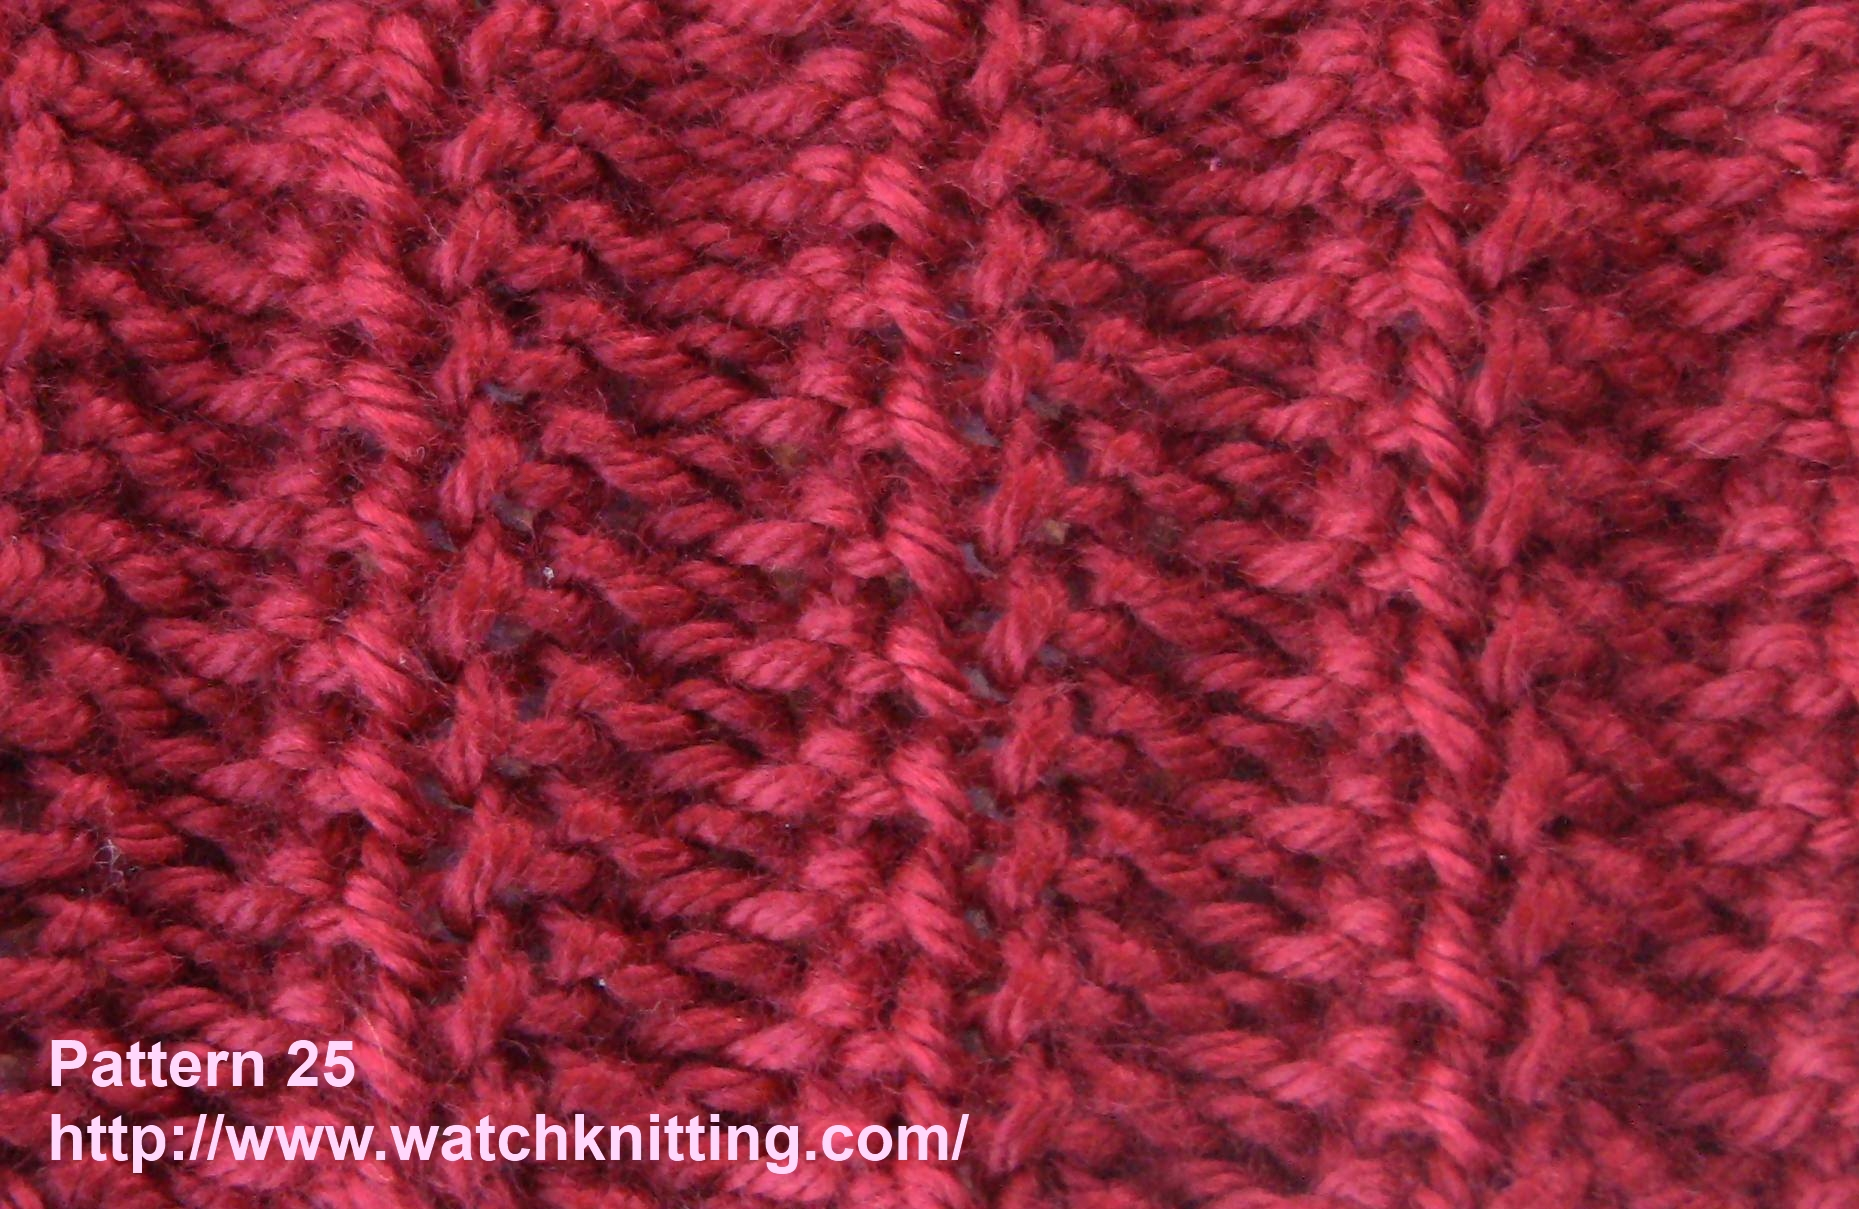 Watch knitting